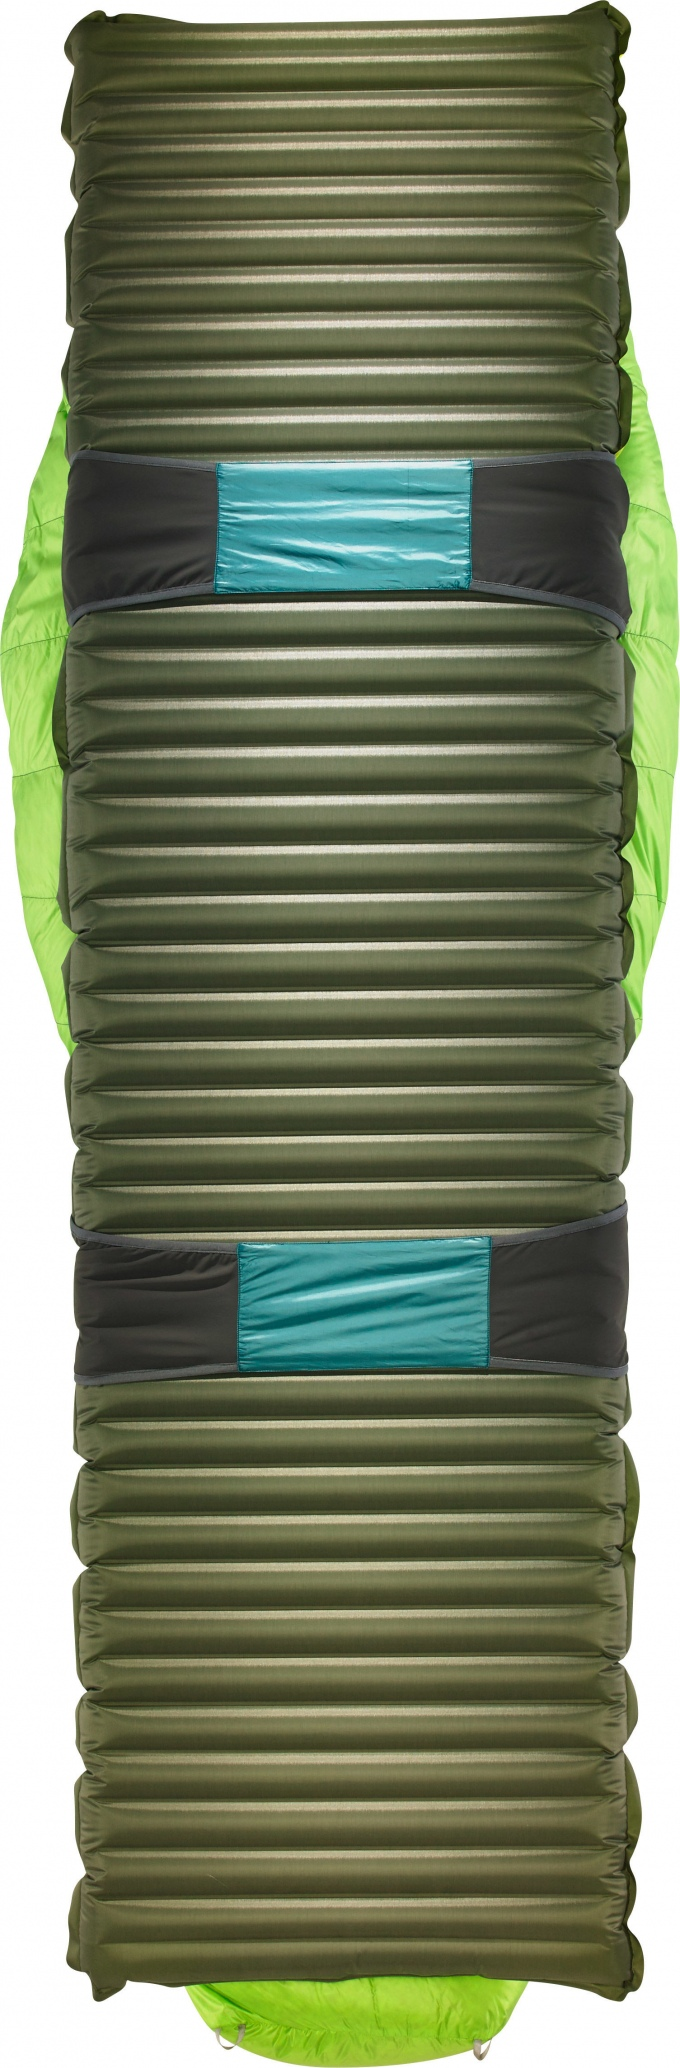 Thermarest Questar 2